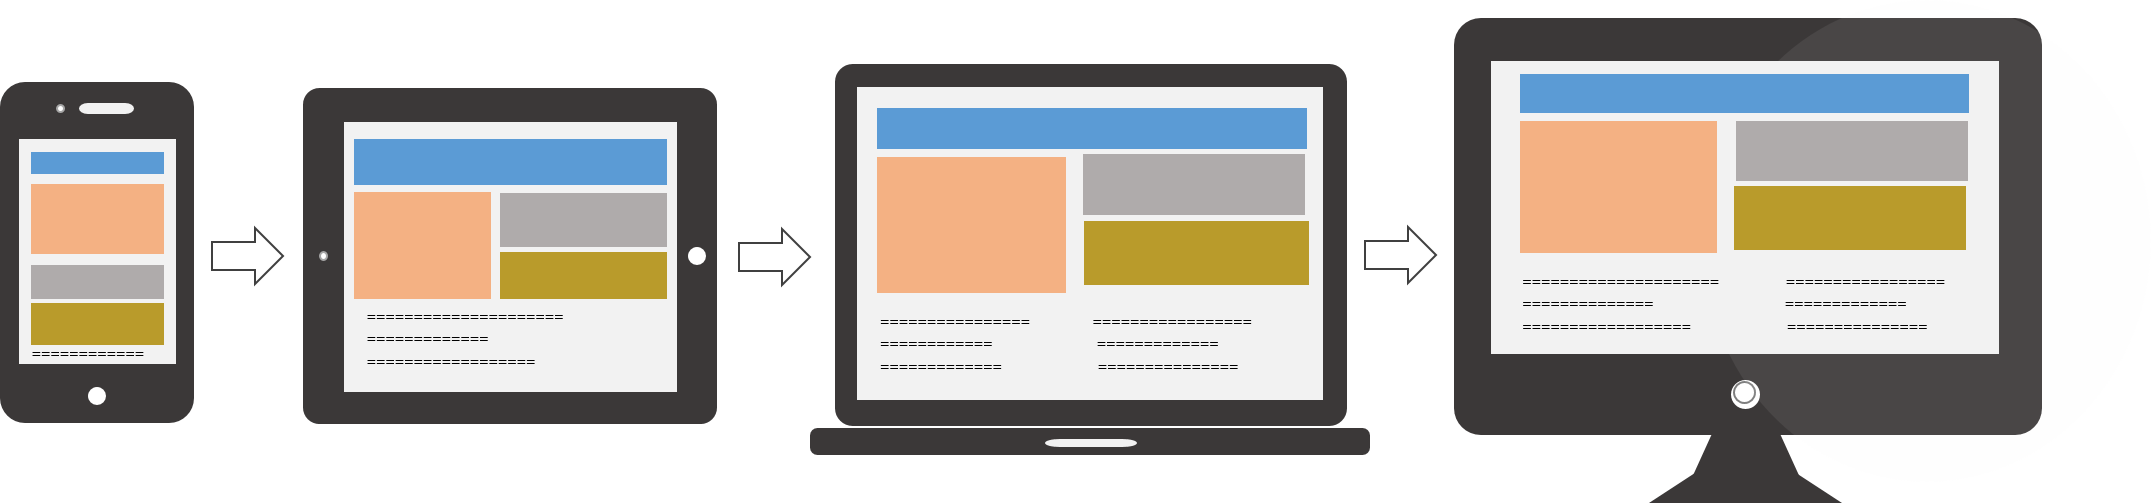 Responsive web design from mobile to tablet to laptop to desktop